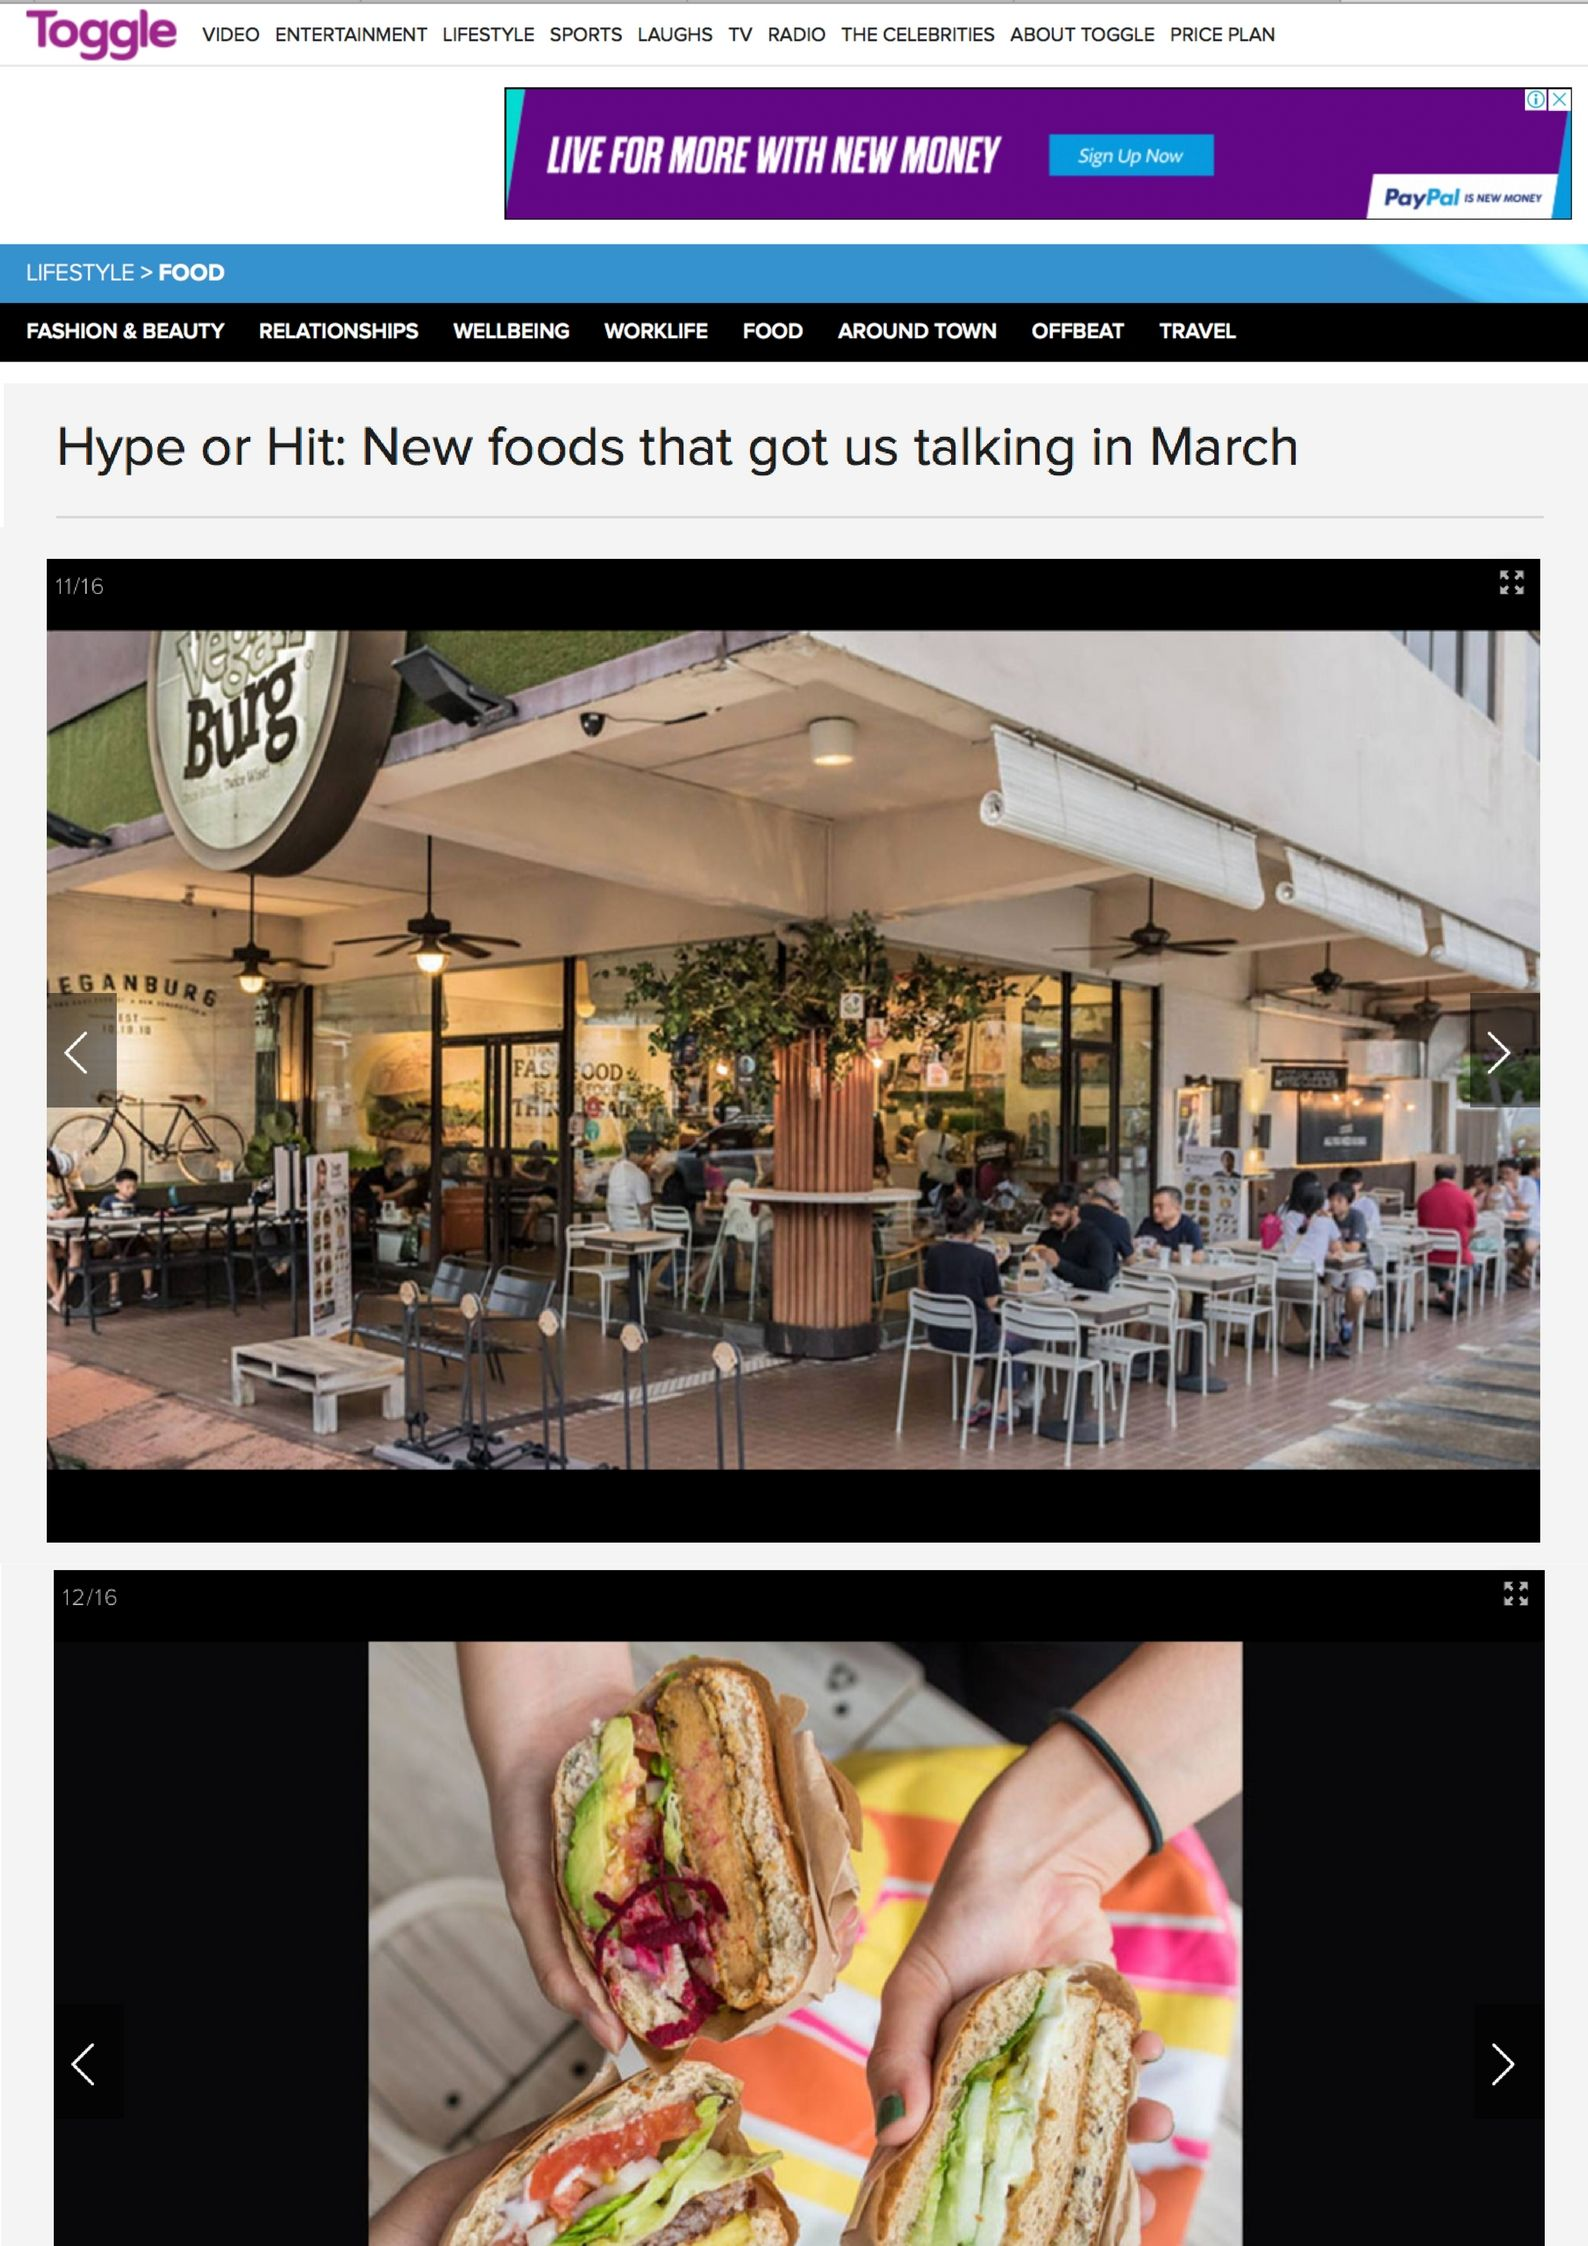 Toggle_ Hype or Hit - New foods that got us talking in March.jpg